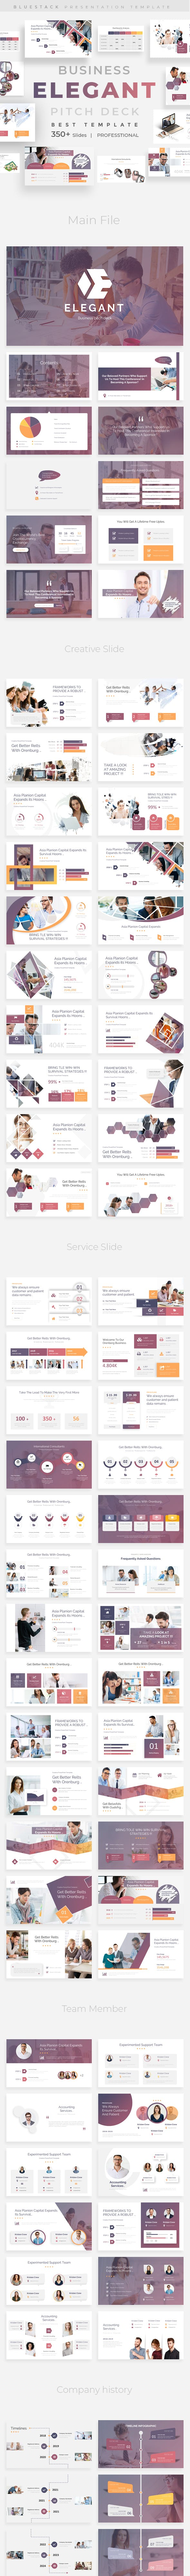 elegant business pitch deck keynote template by bluestack graphicriver